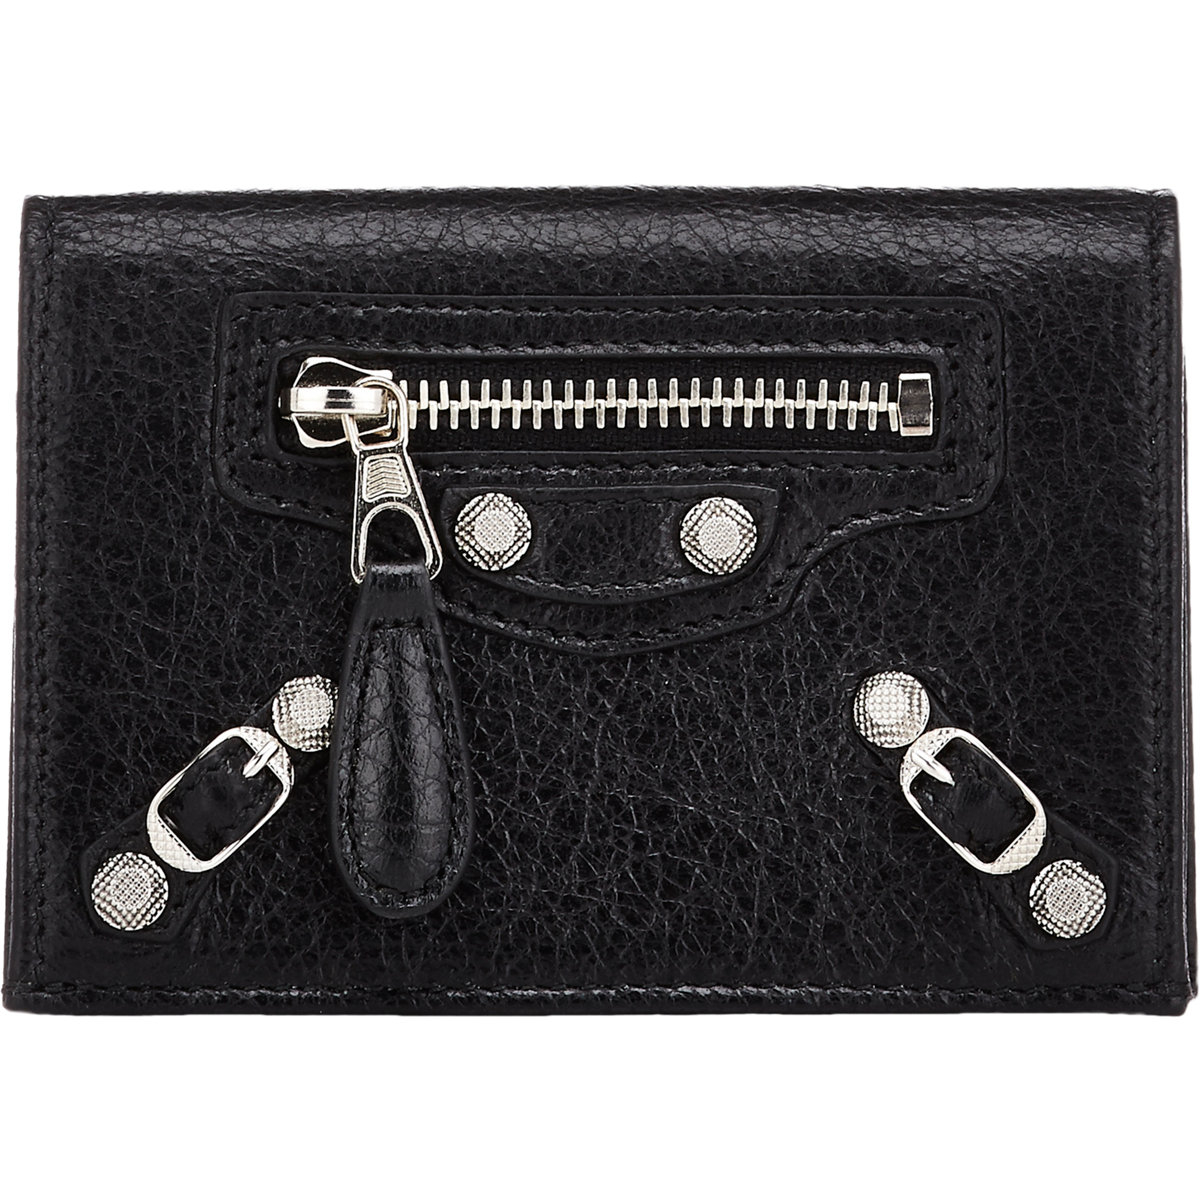 Womens Bazar Arena Leather Card Case Balenciaga Shopping Discounts Online Wiki Cheap Price Discount Visit New fv197CzR